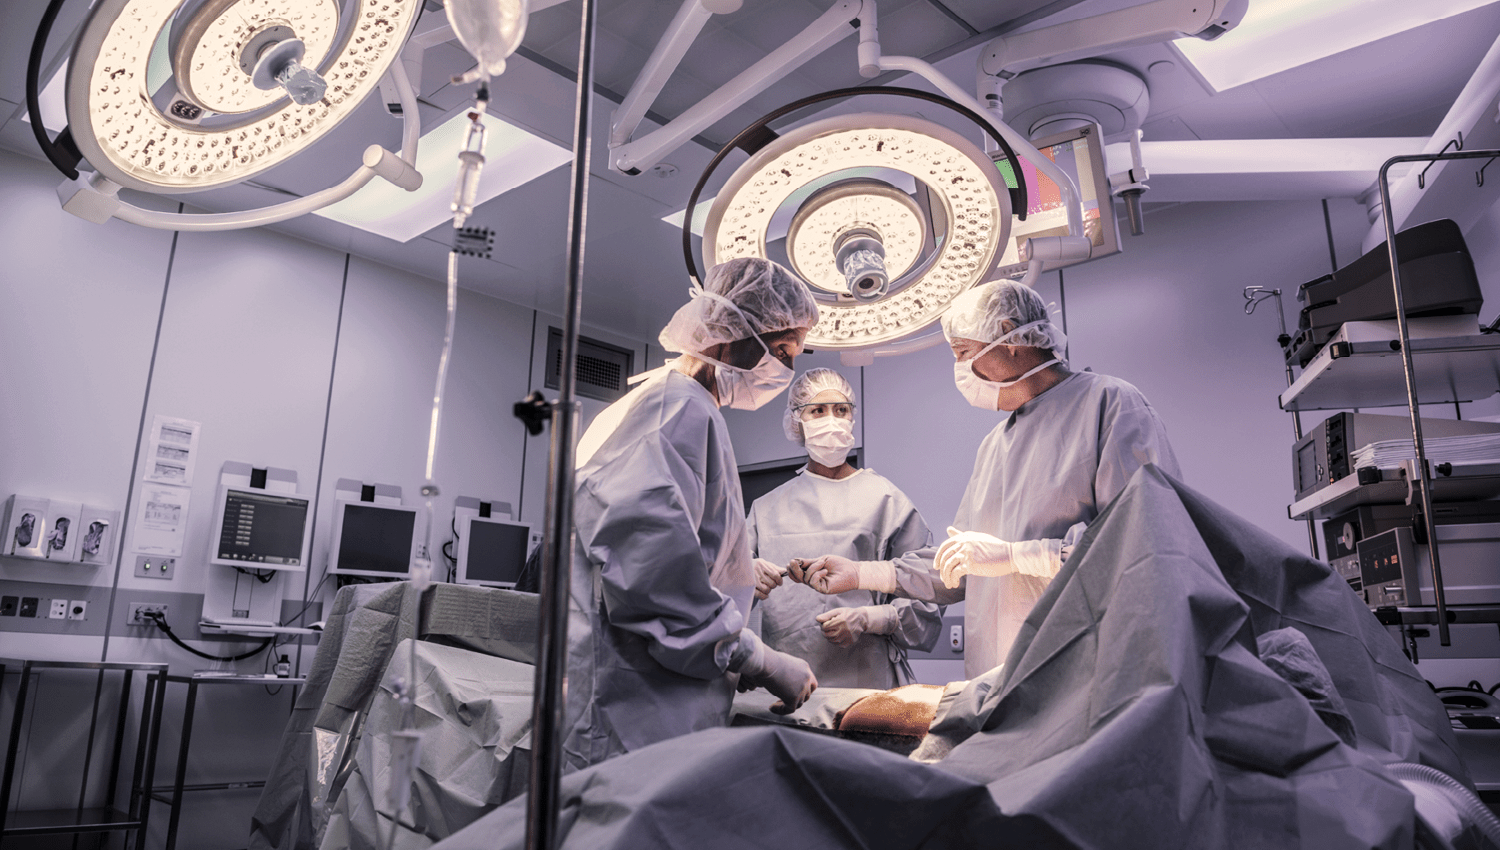 Image of surgical personnel performing an operating in an operating room.